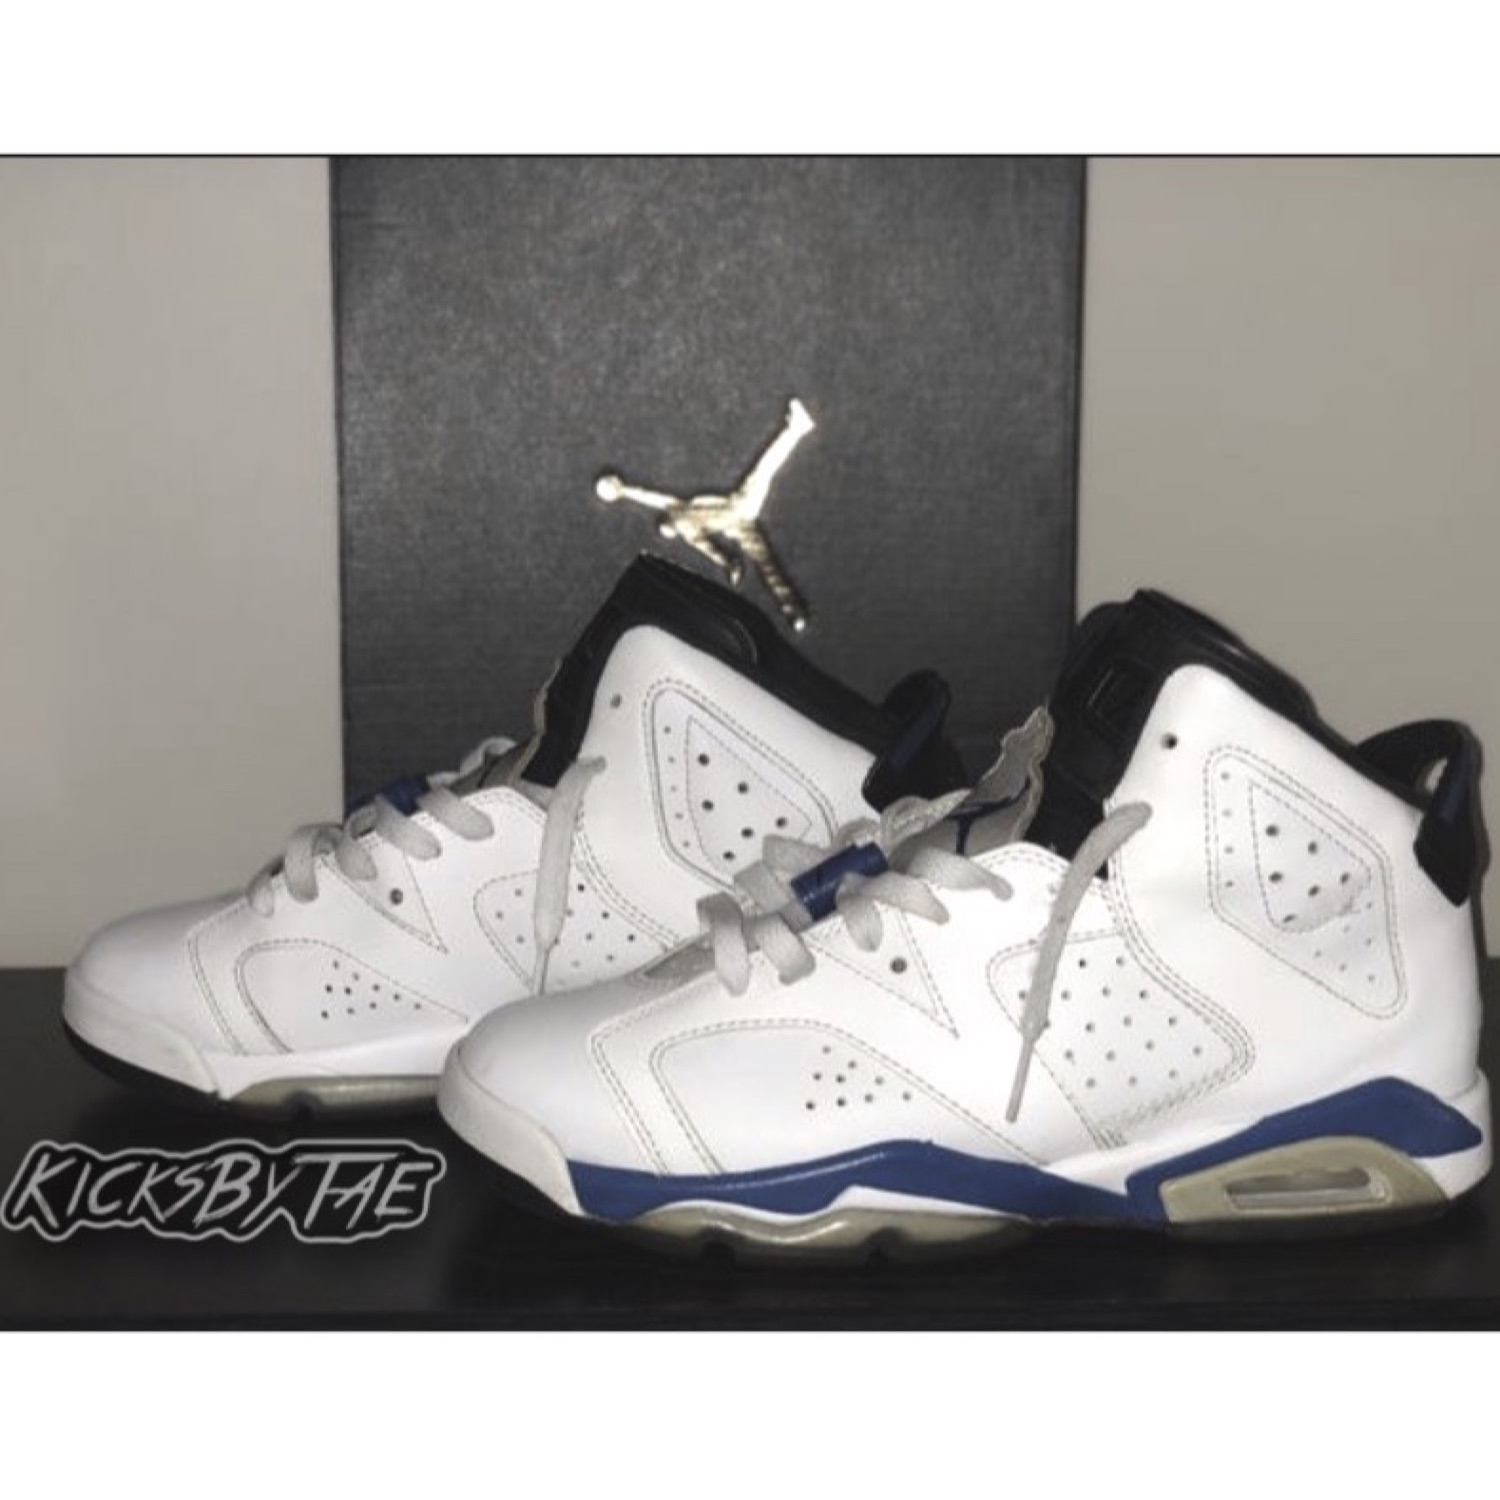 "Air Jordan 6 ""Sport Blue"" Size 6.5 (Gs) Boys"